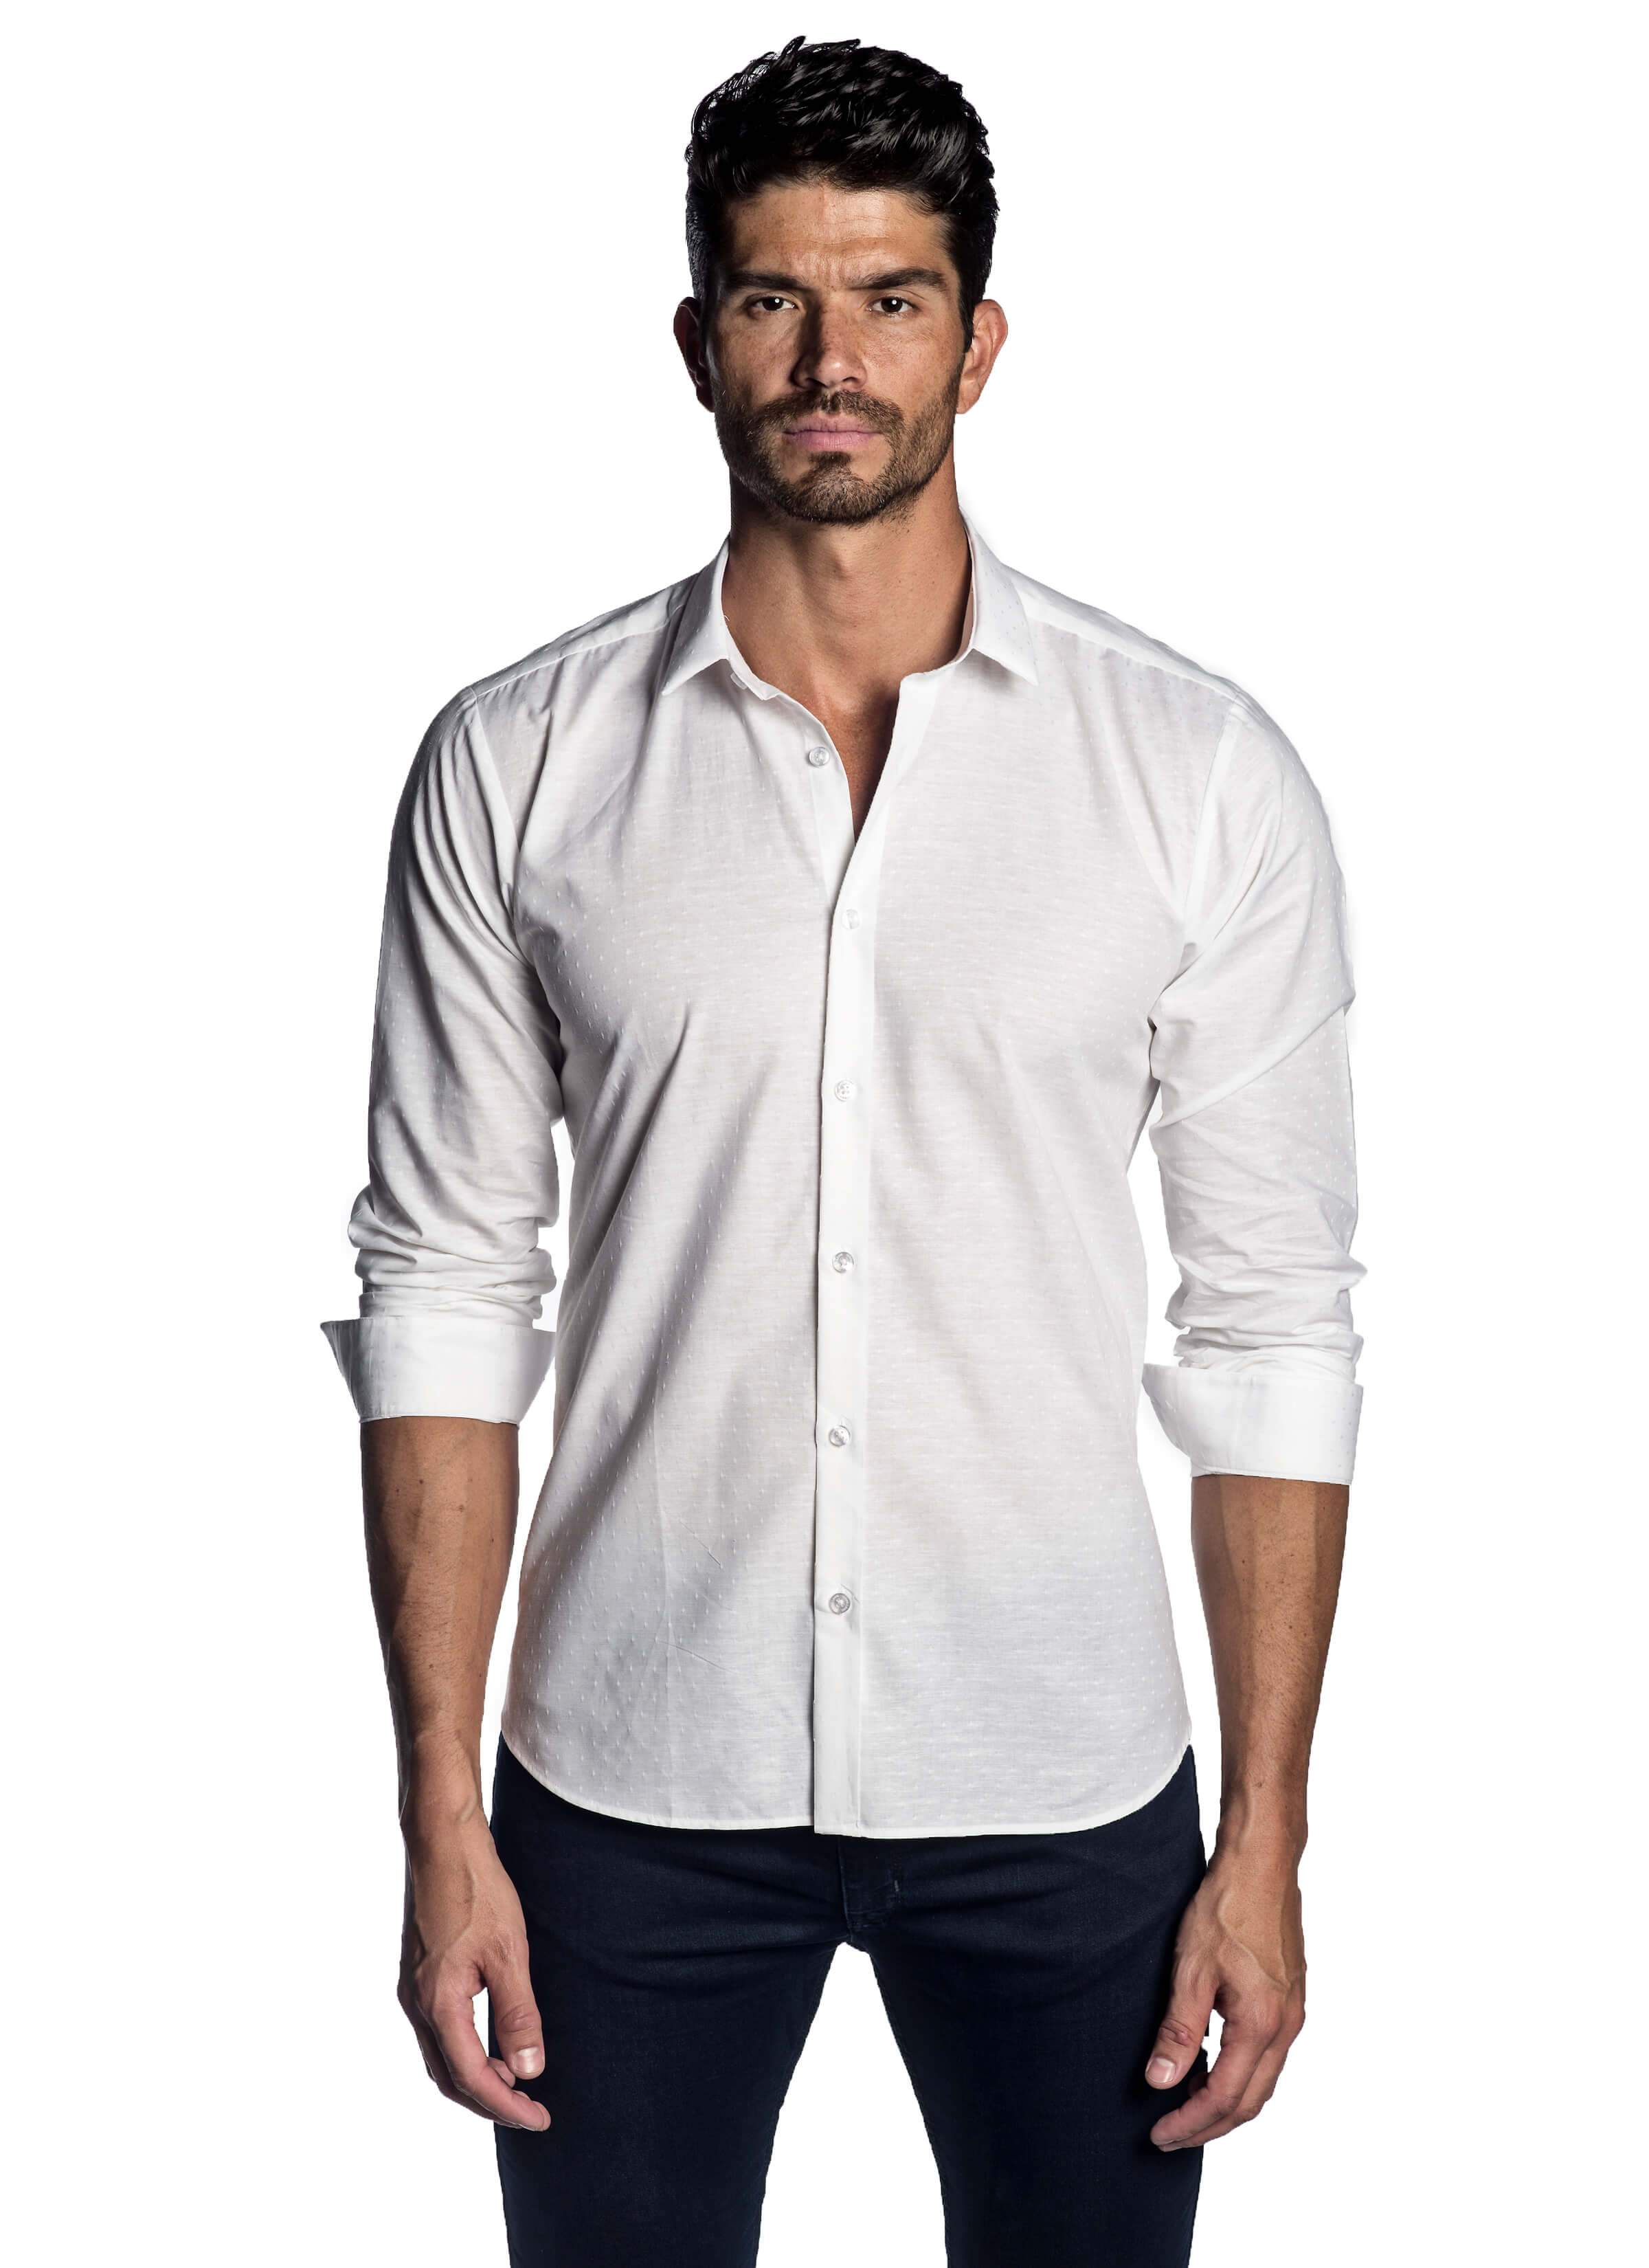 White Solid Shirt AH-T-2055